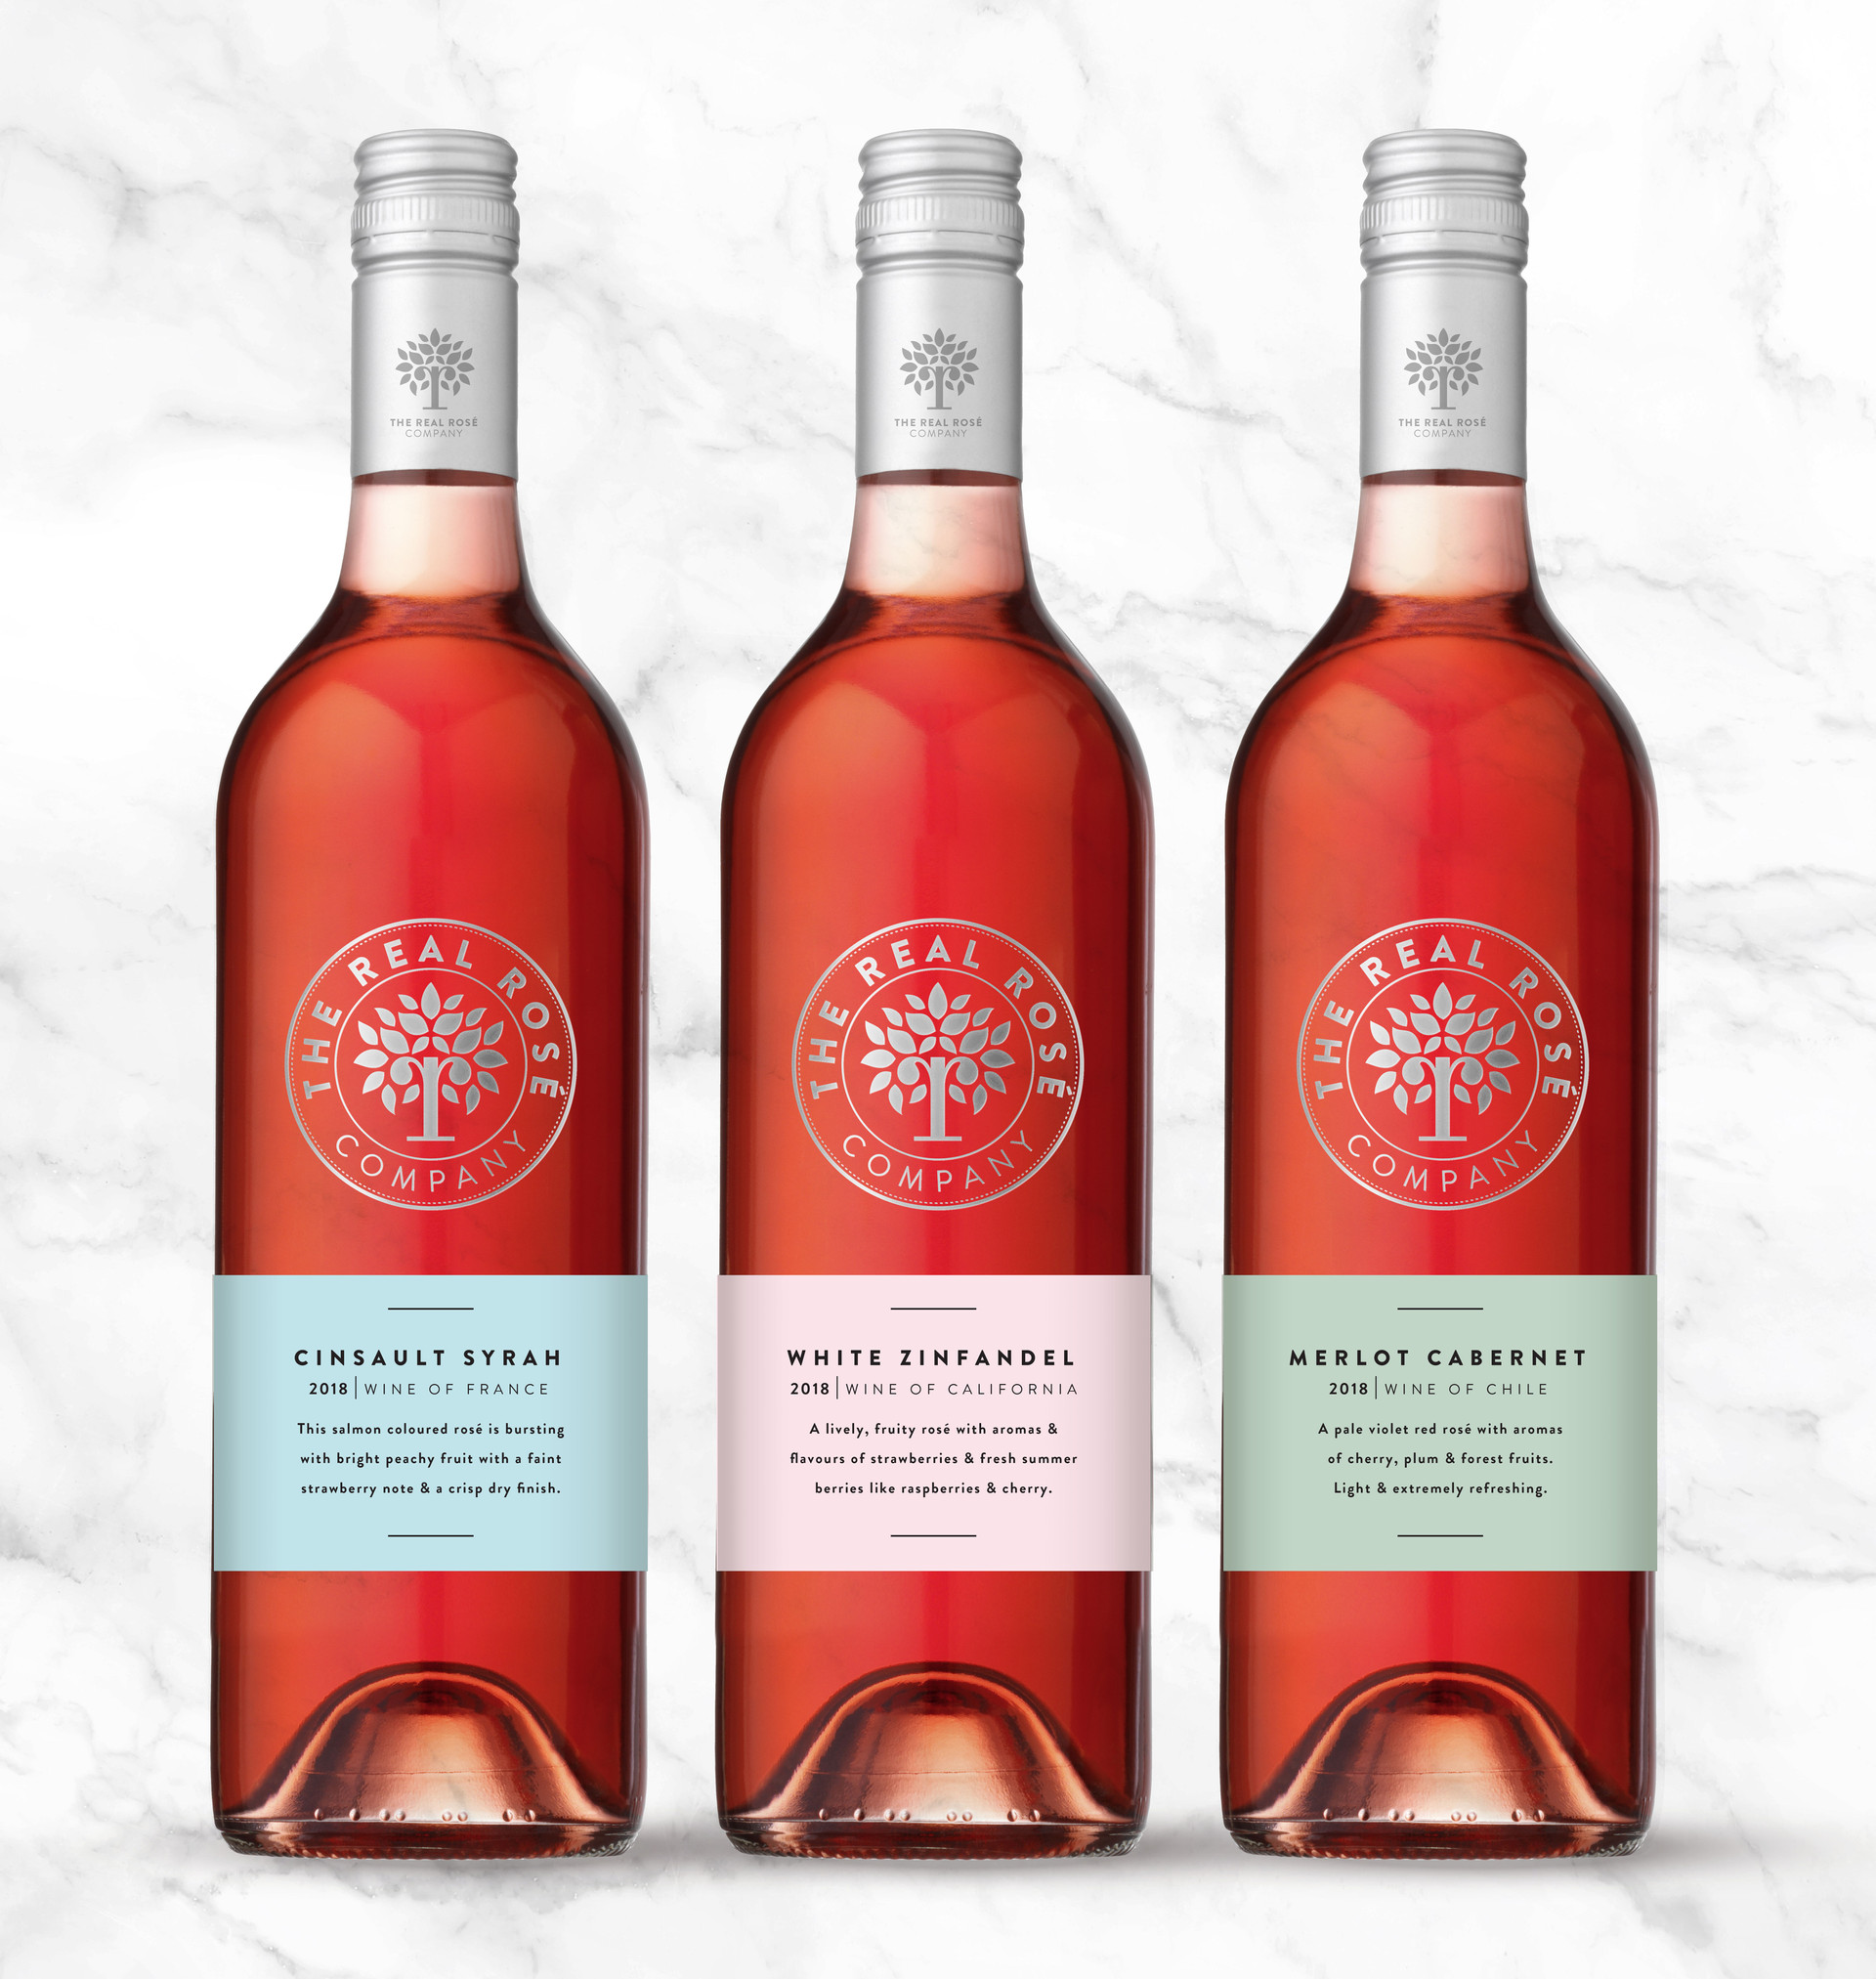 The Real Rosé Company